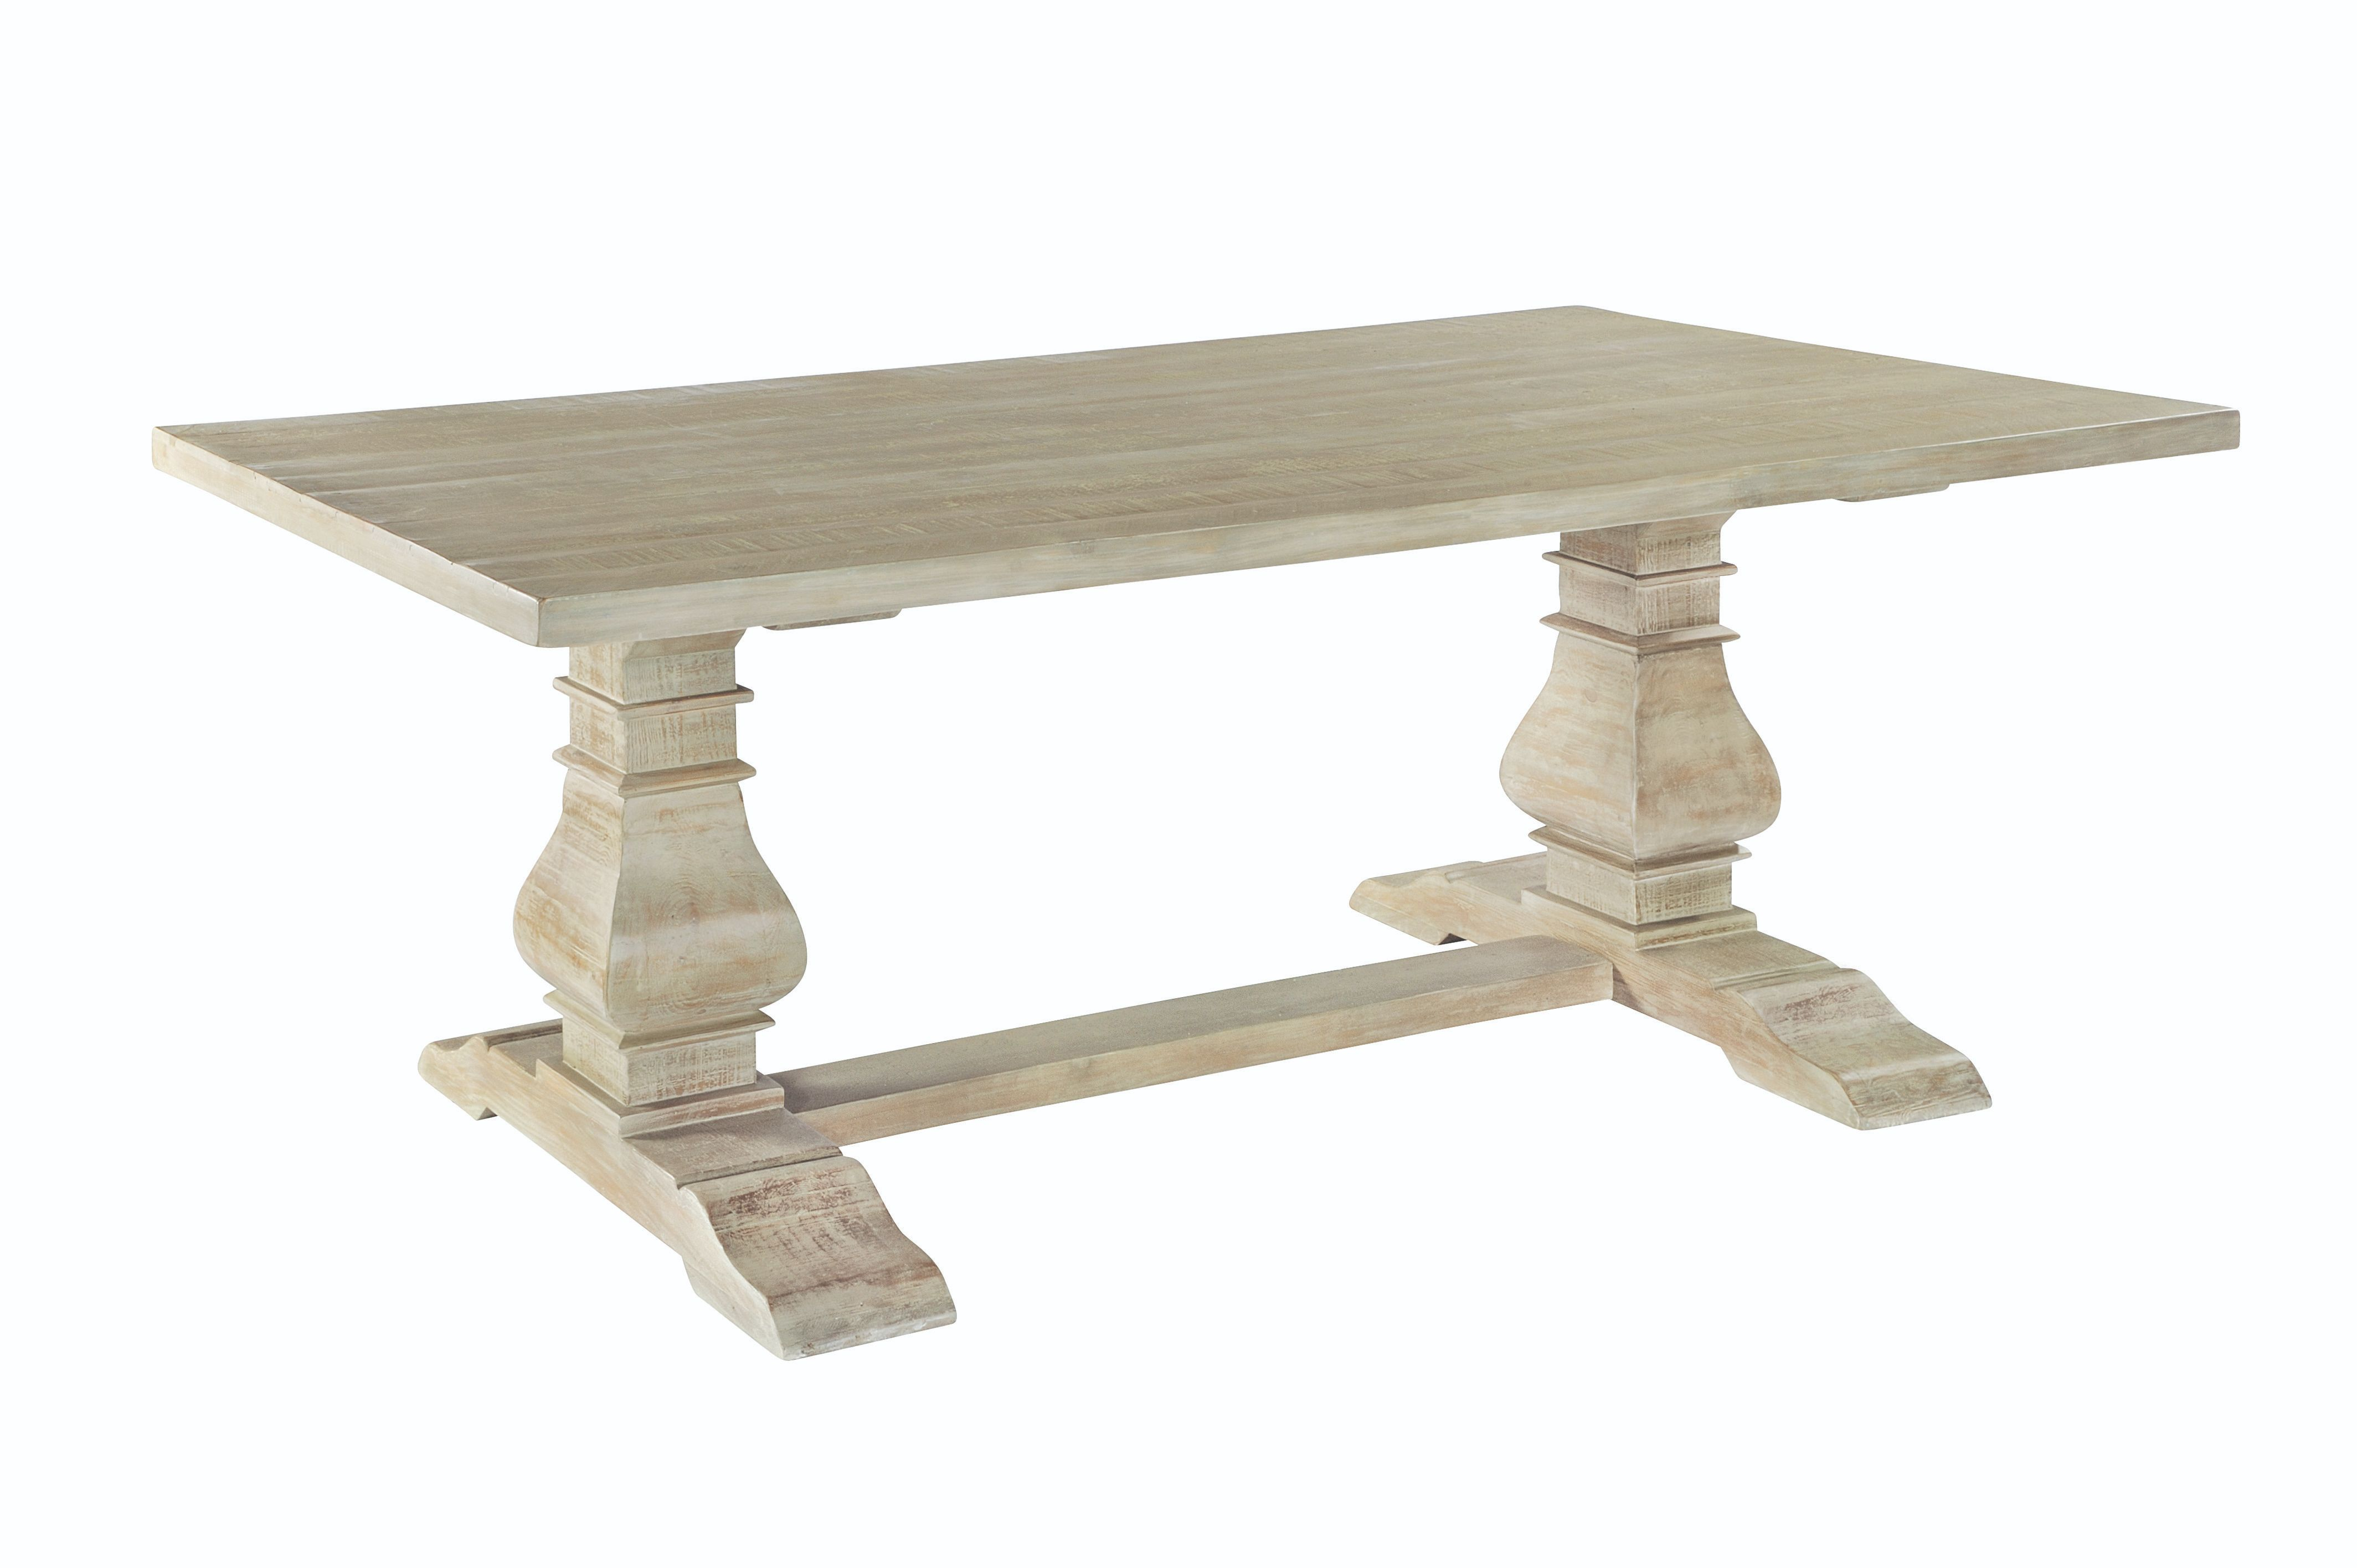 BROUGHTON REFECTORY DINING TABLE In Lime-washed Timber